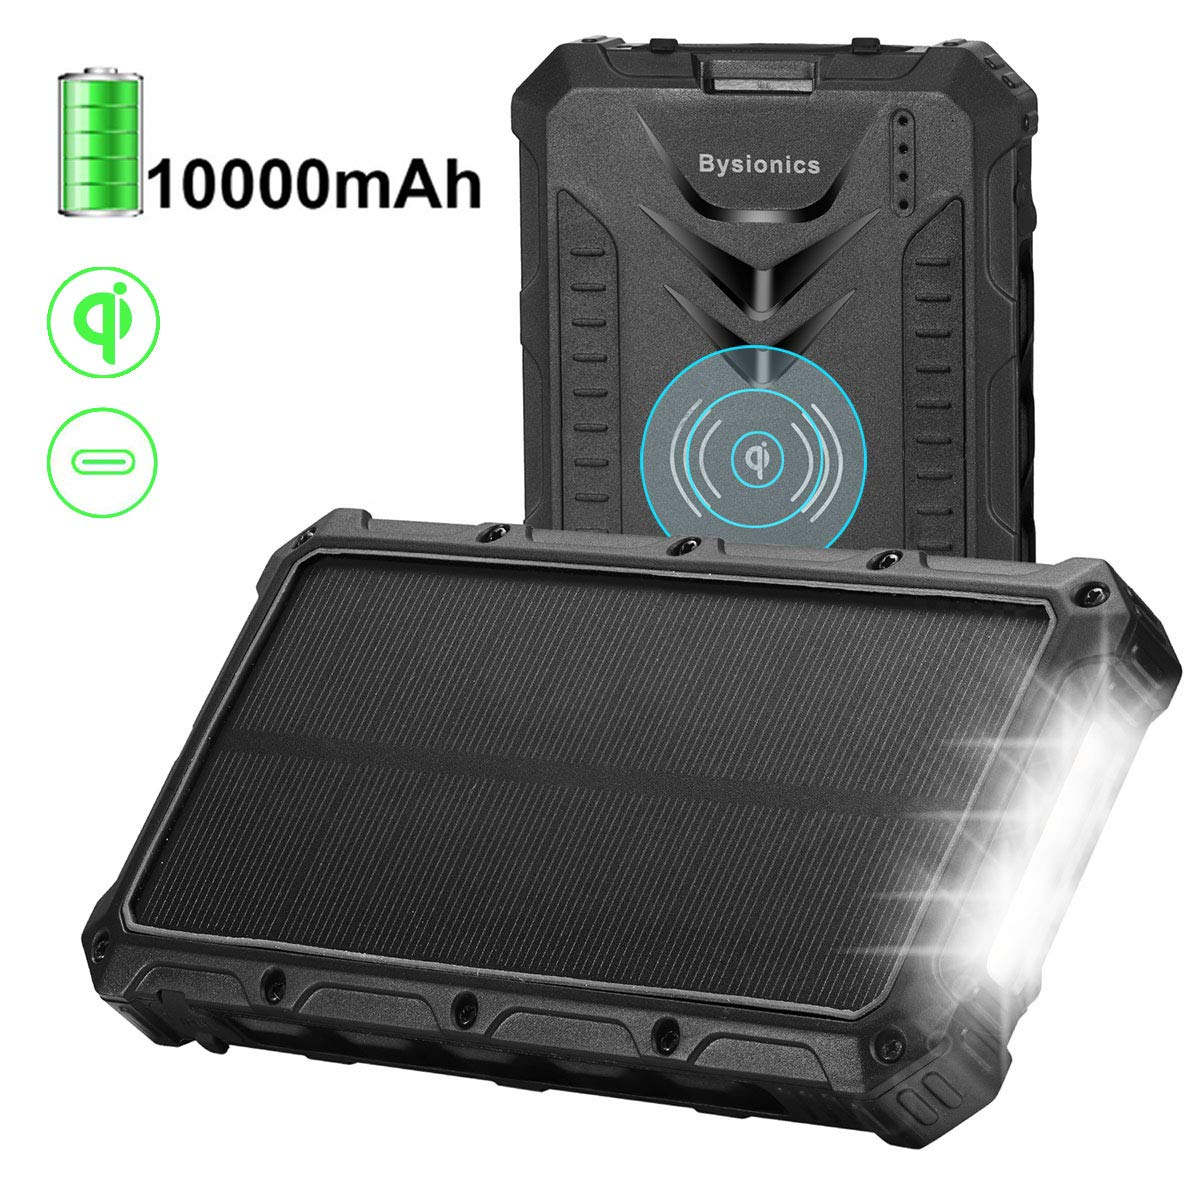 Bysionics Phone Solar Charger